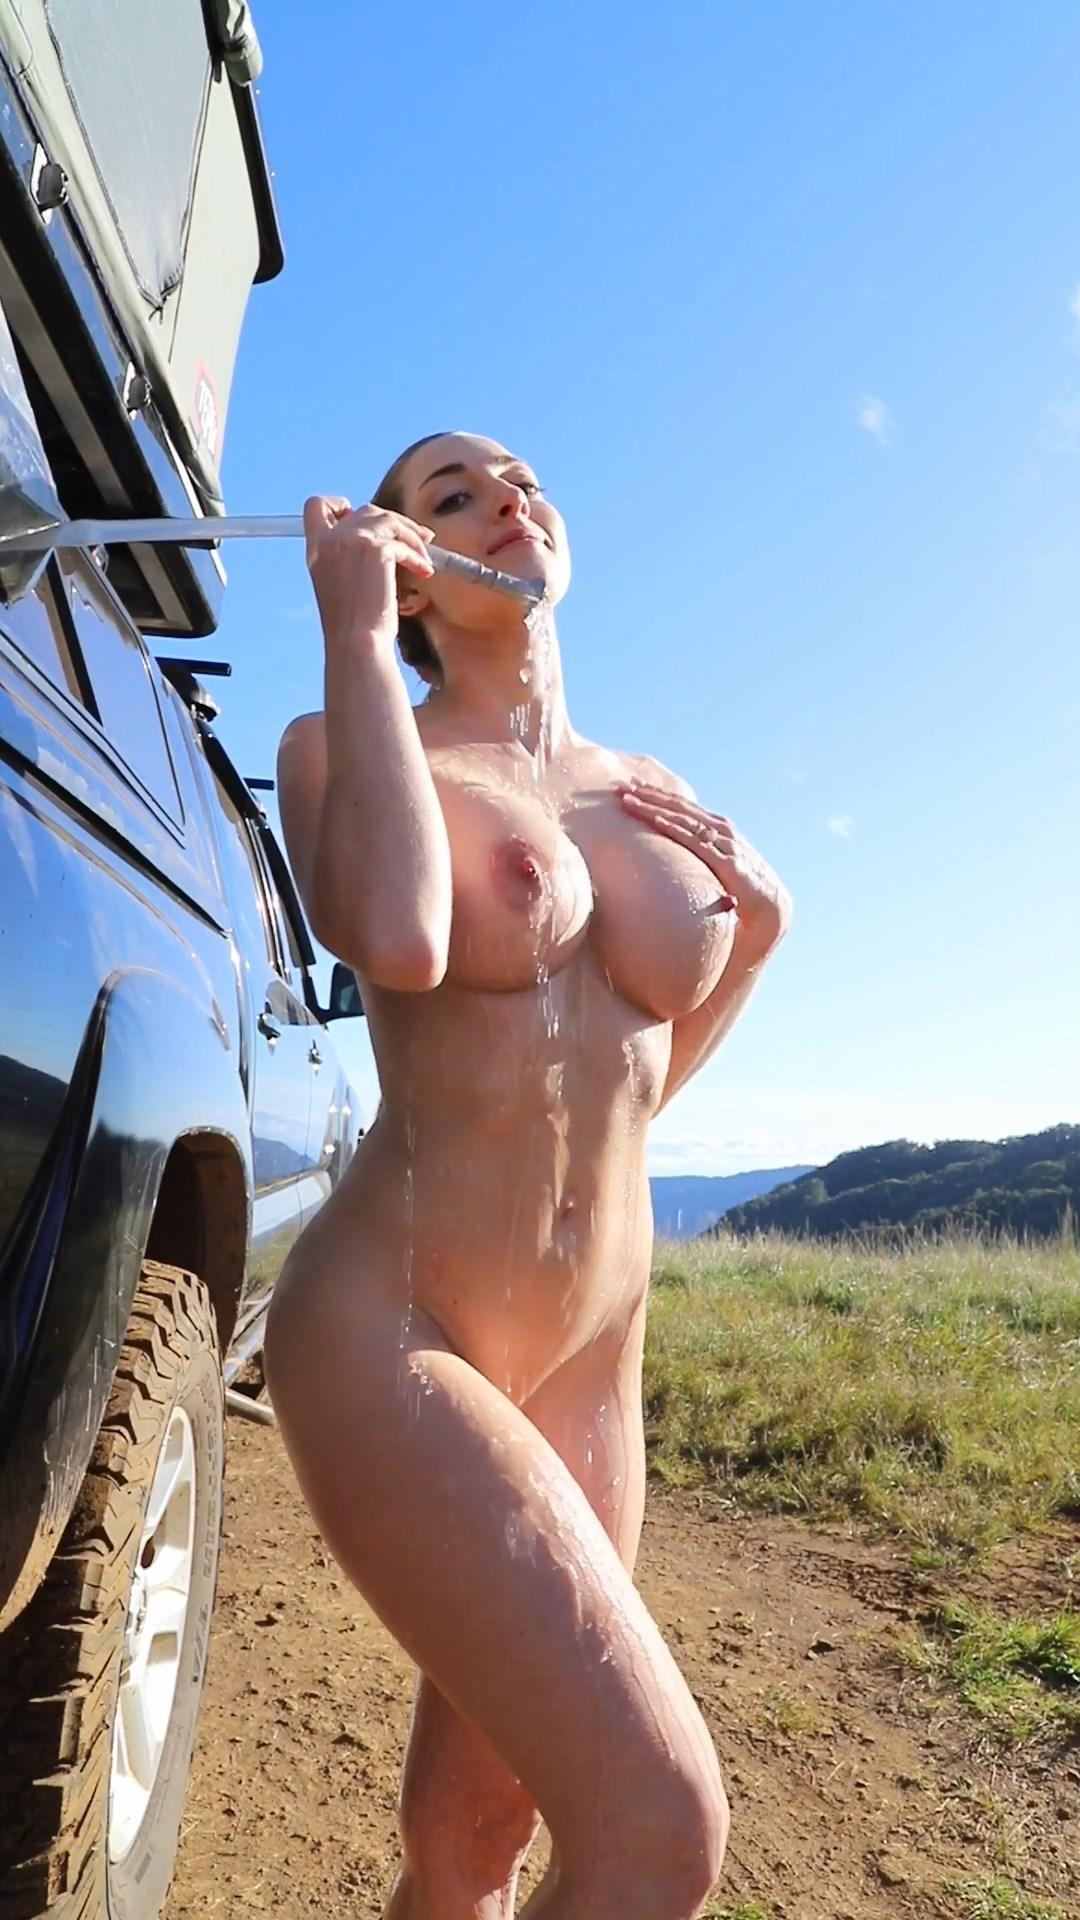 Abby Opel Naked Outdoor Shower Onlyfans Video Leaked